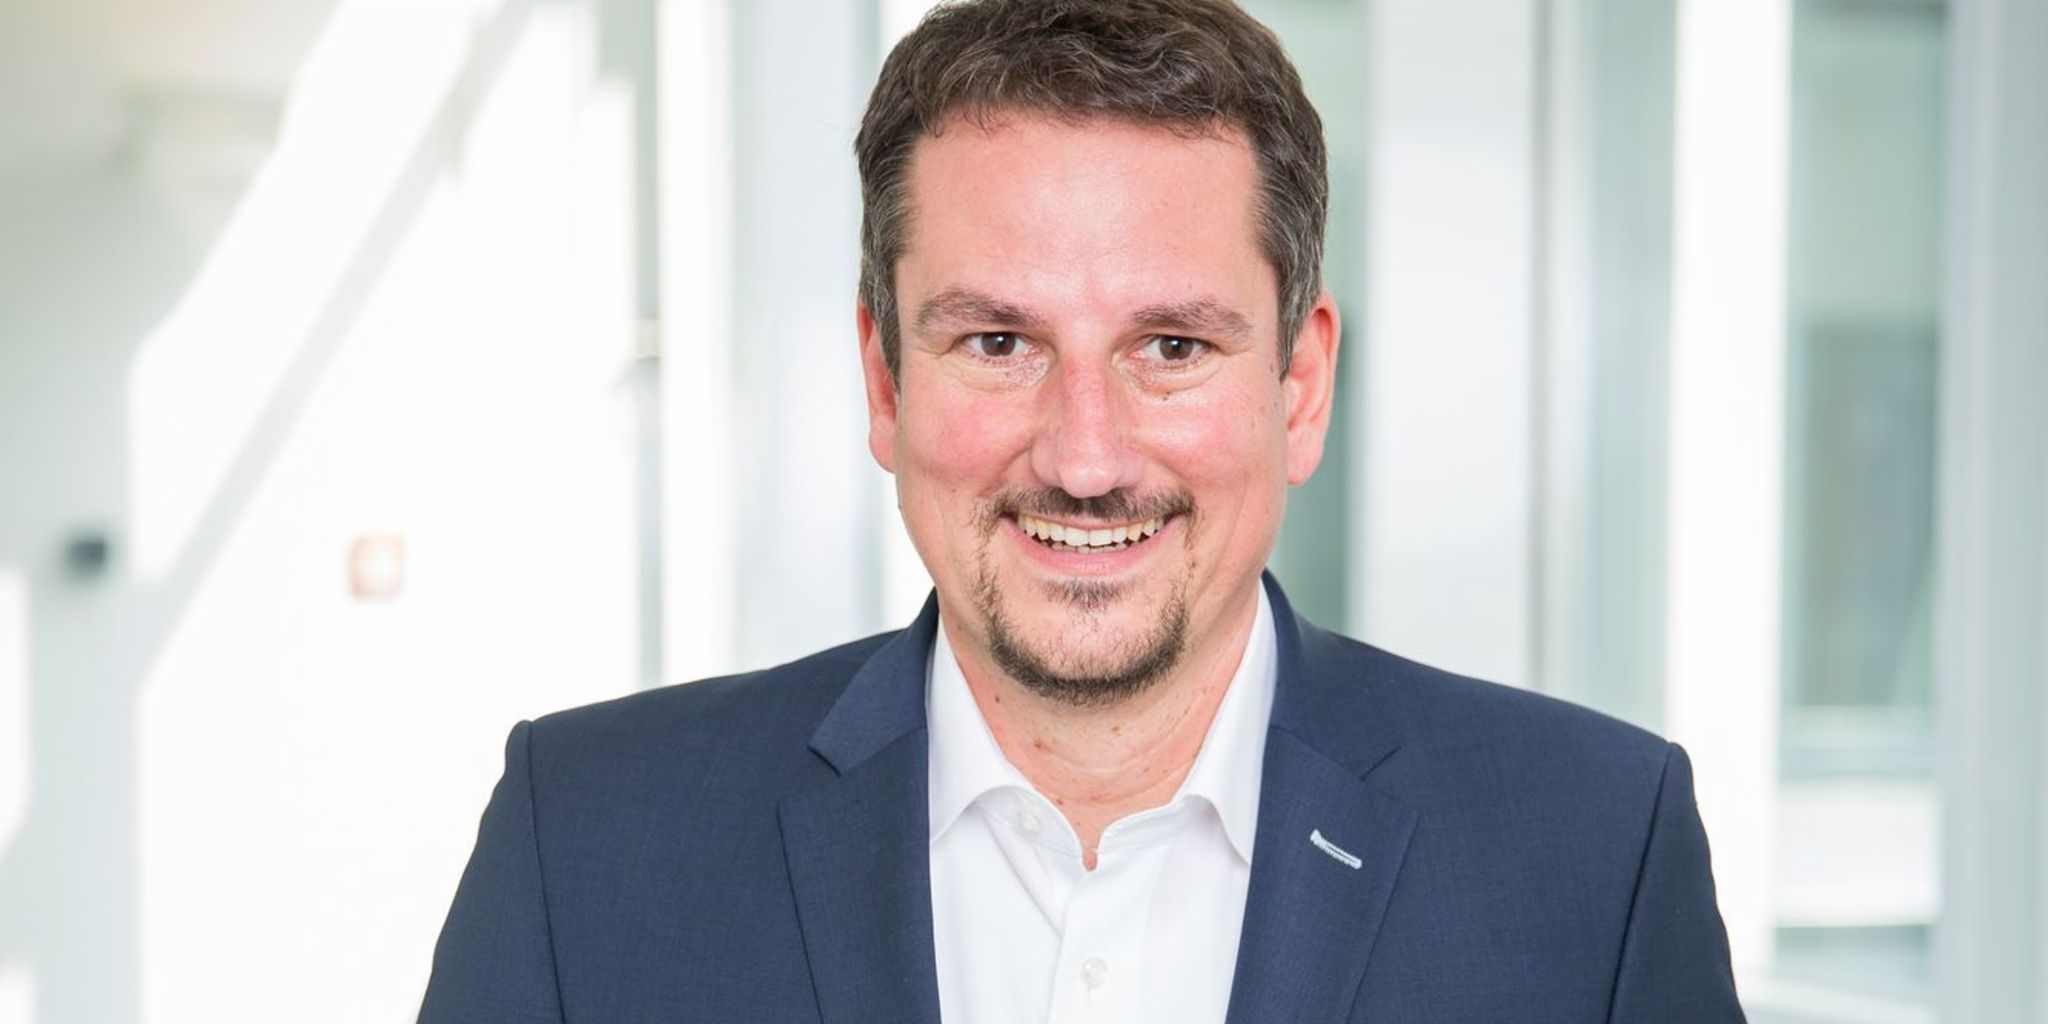 Joachim Göller, Head of the Center of Analytics of the EOS Group